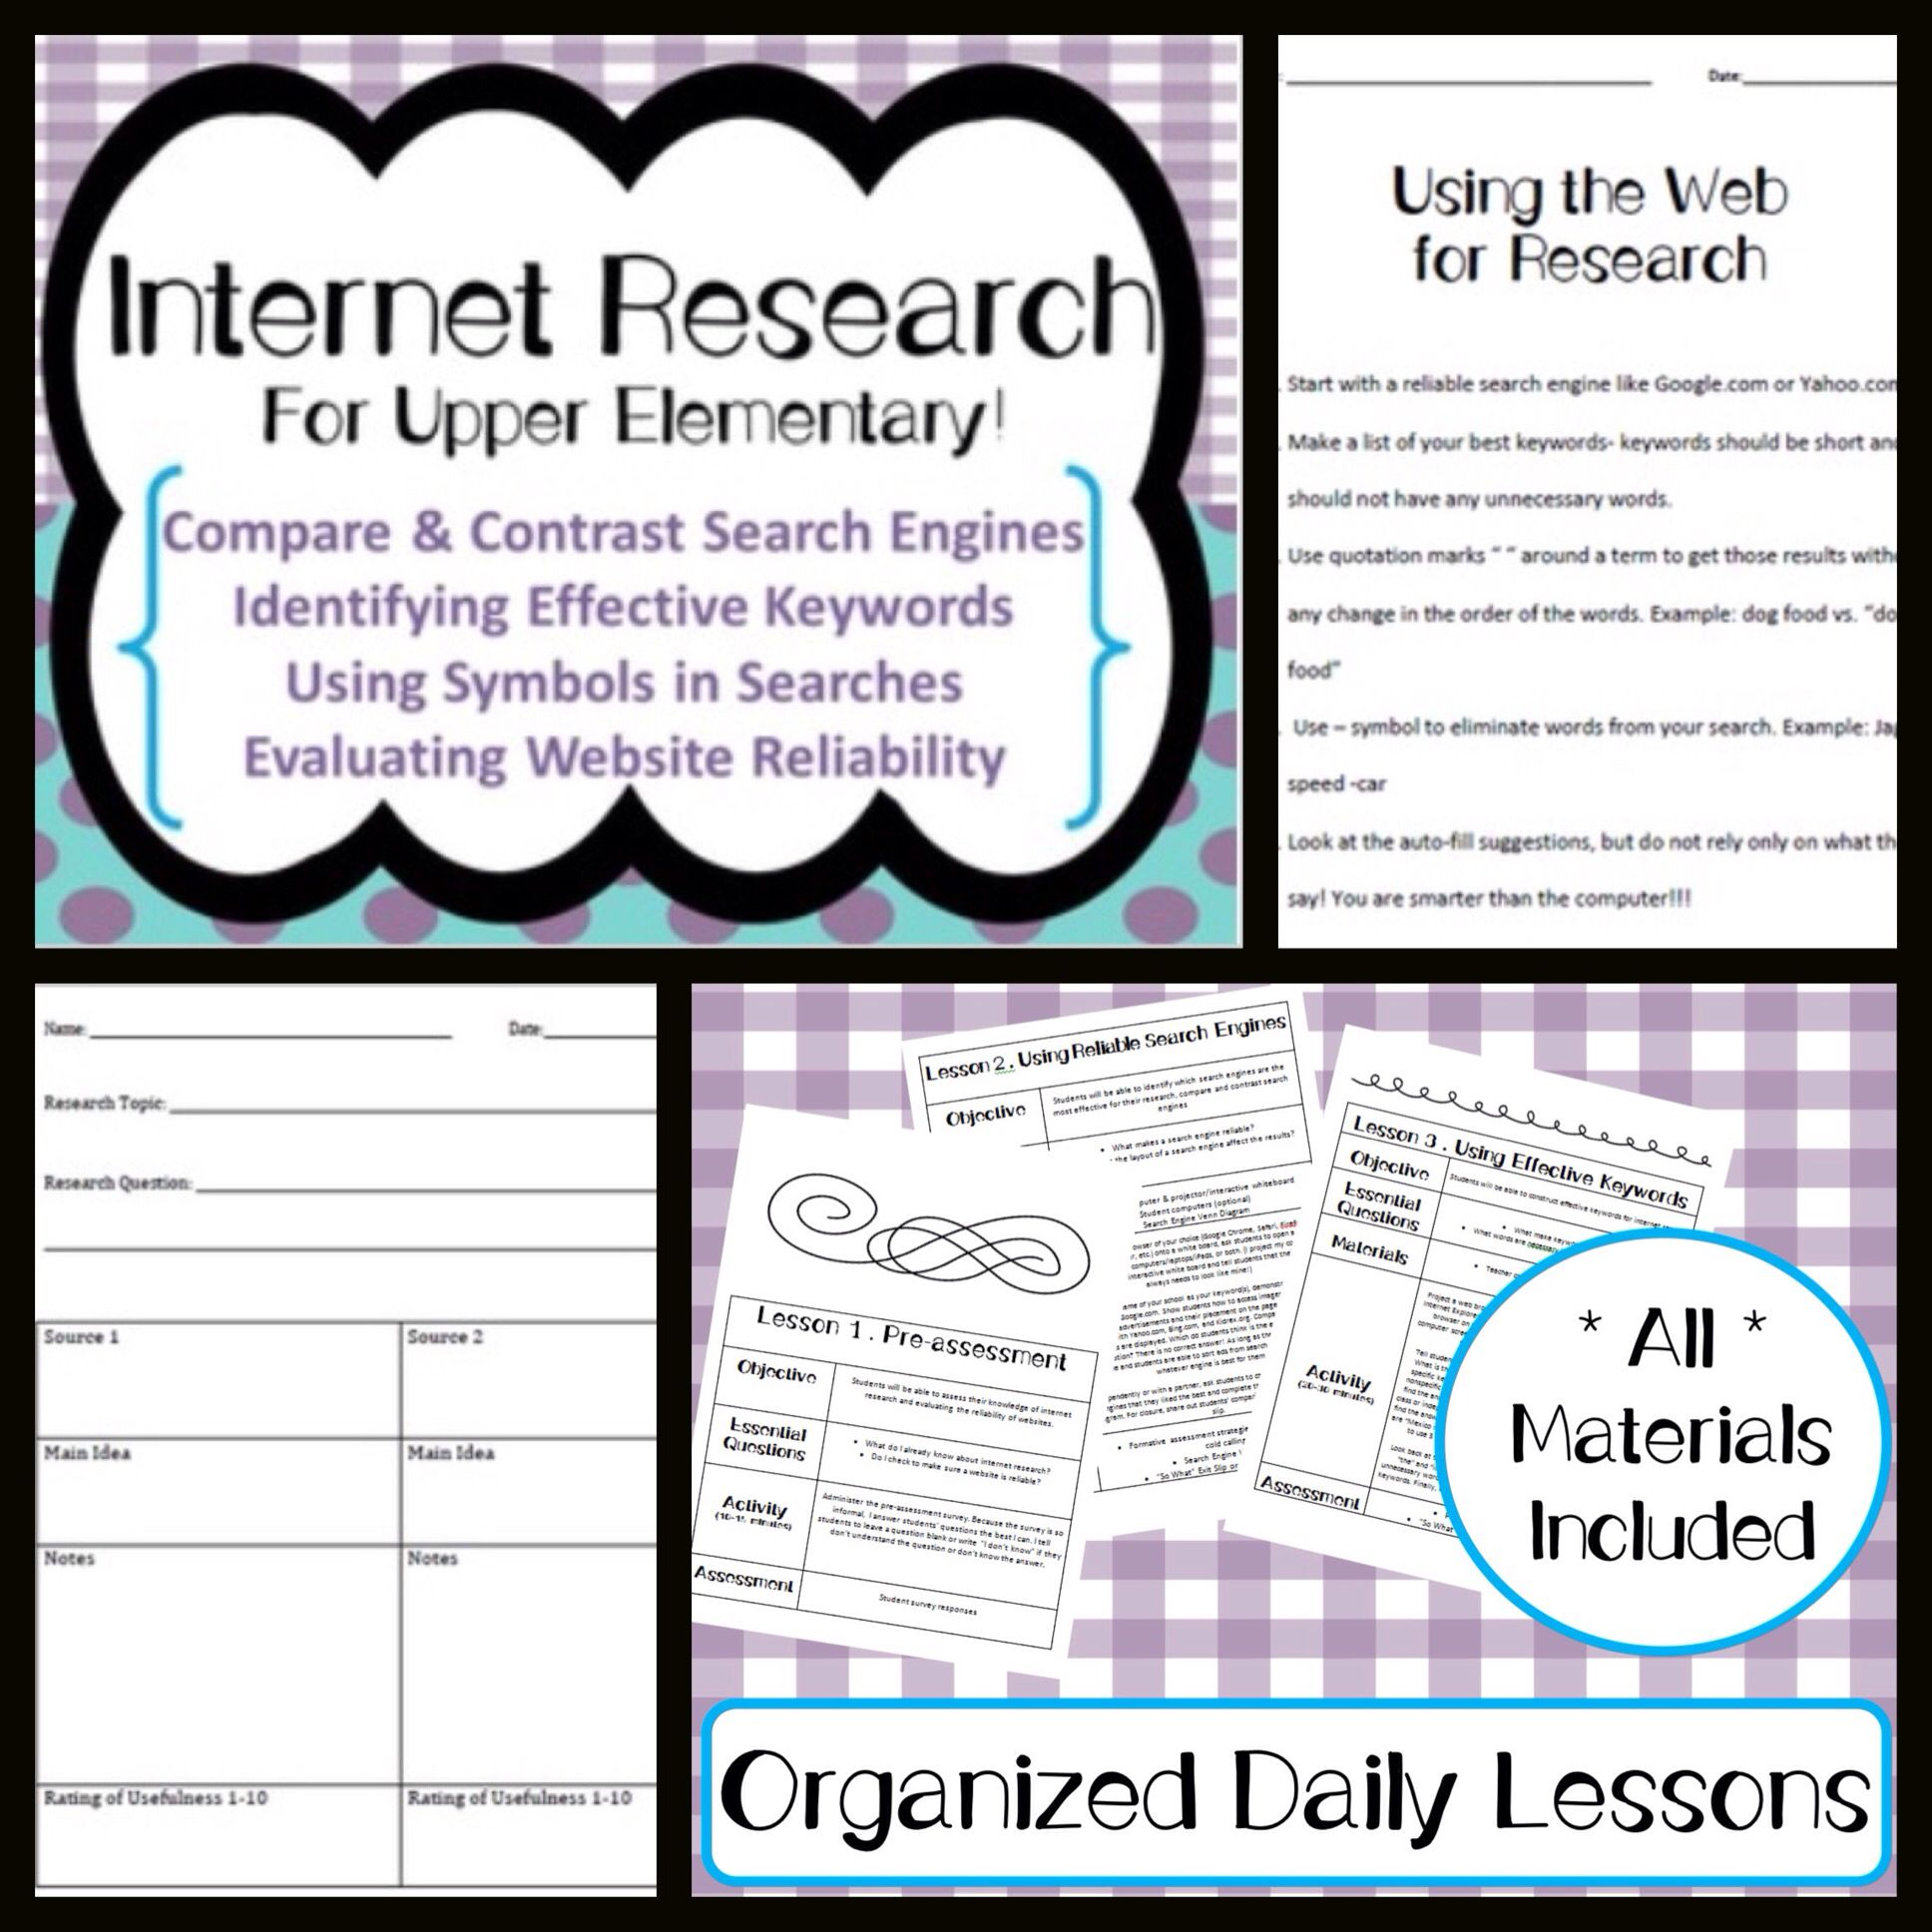 senior research paper leson plan Writing a research paper lesson plans and worksheets from thousands of teacher-reviewed resources to help you inspire students learning.